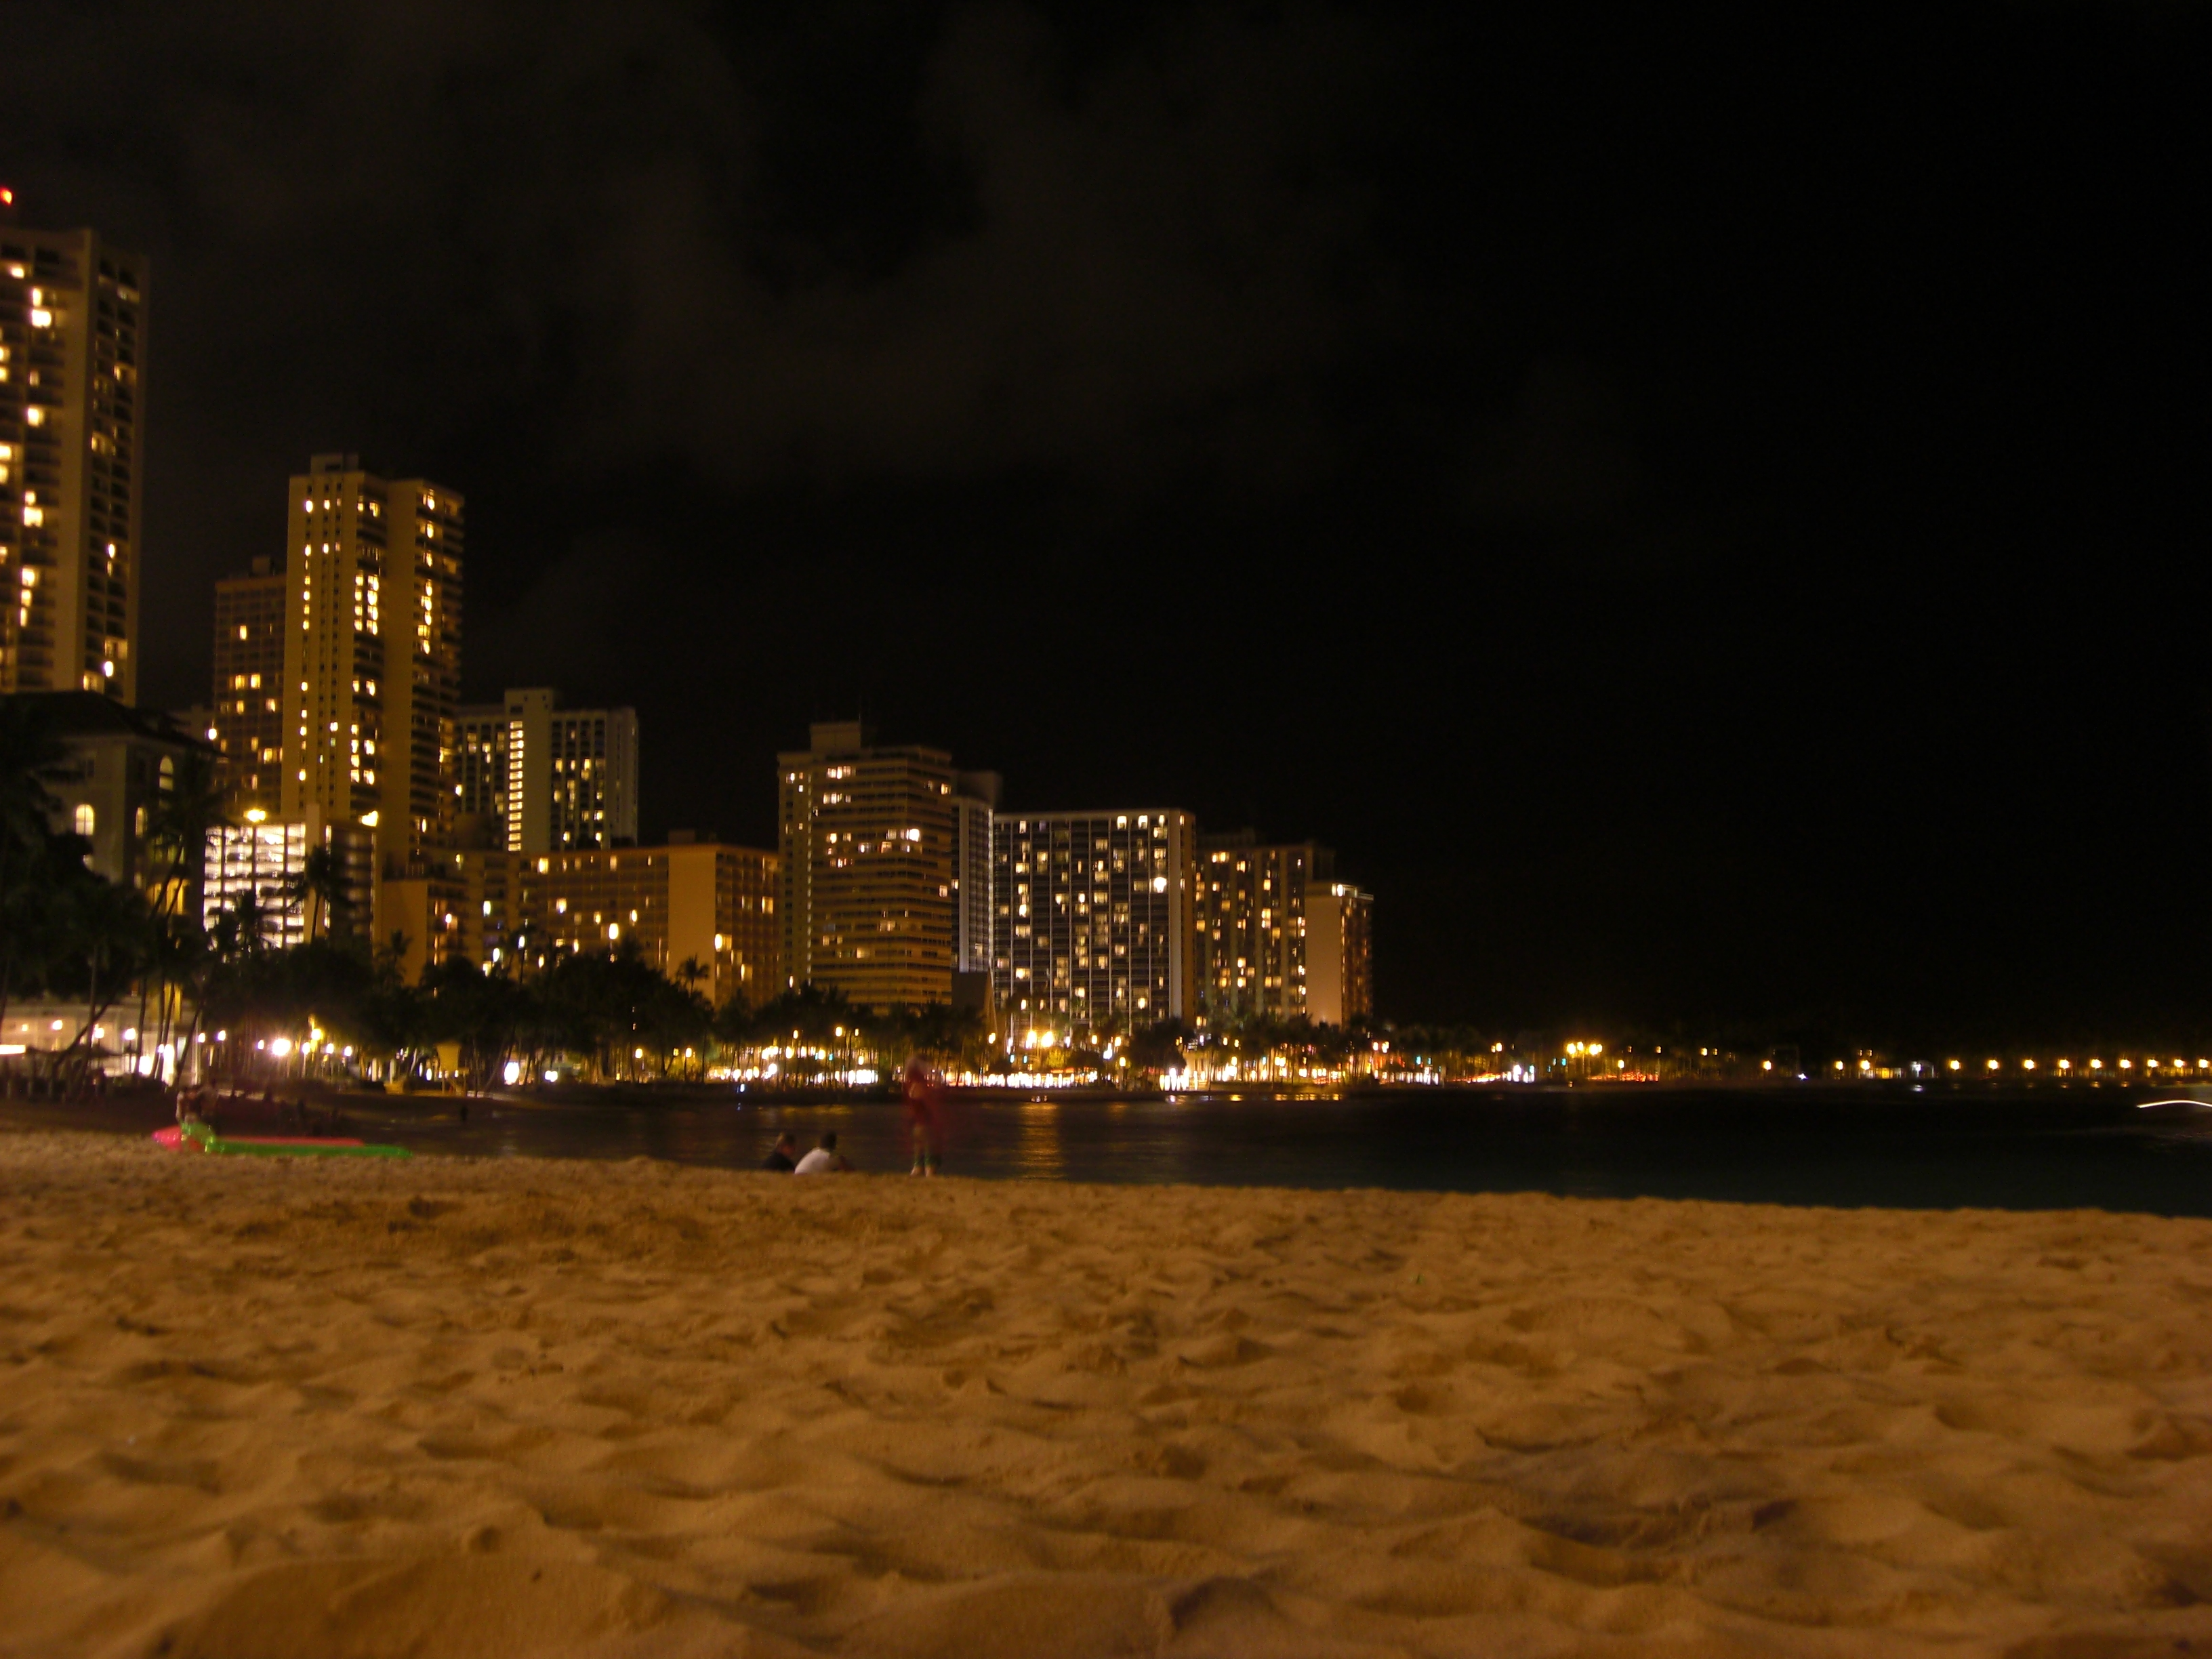 night city beach in - photo #15